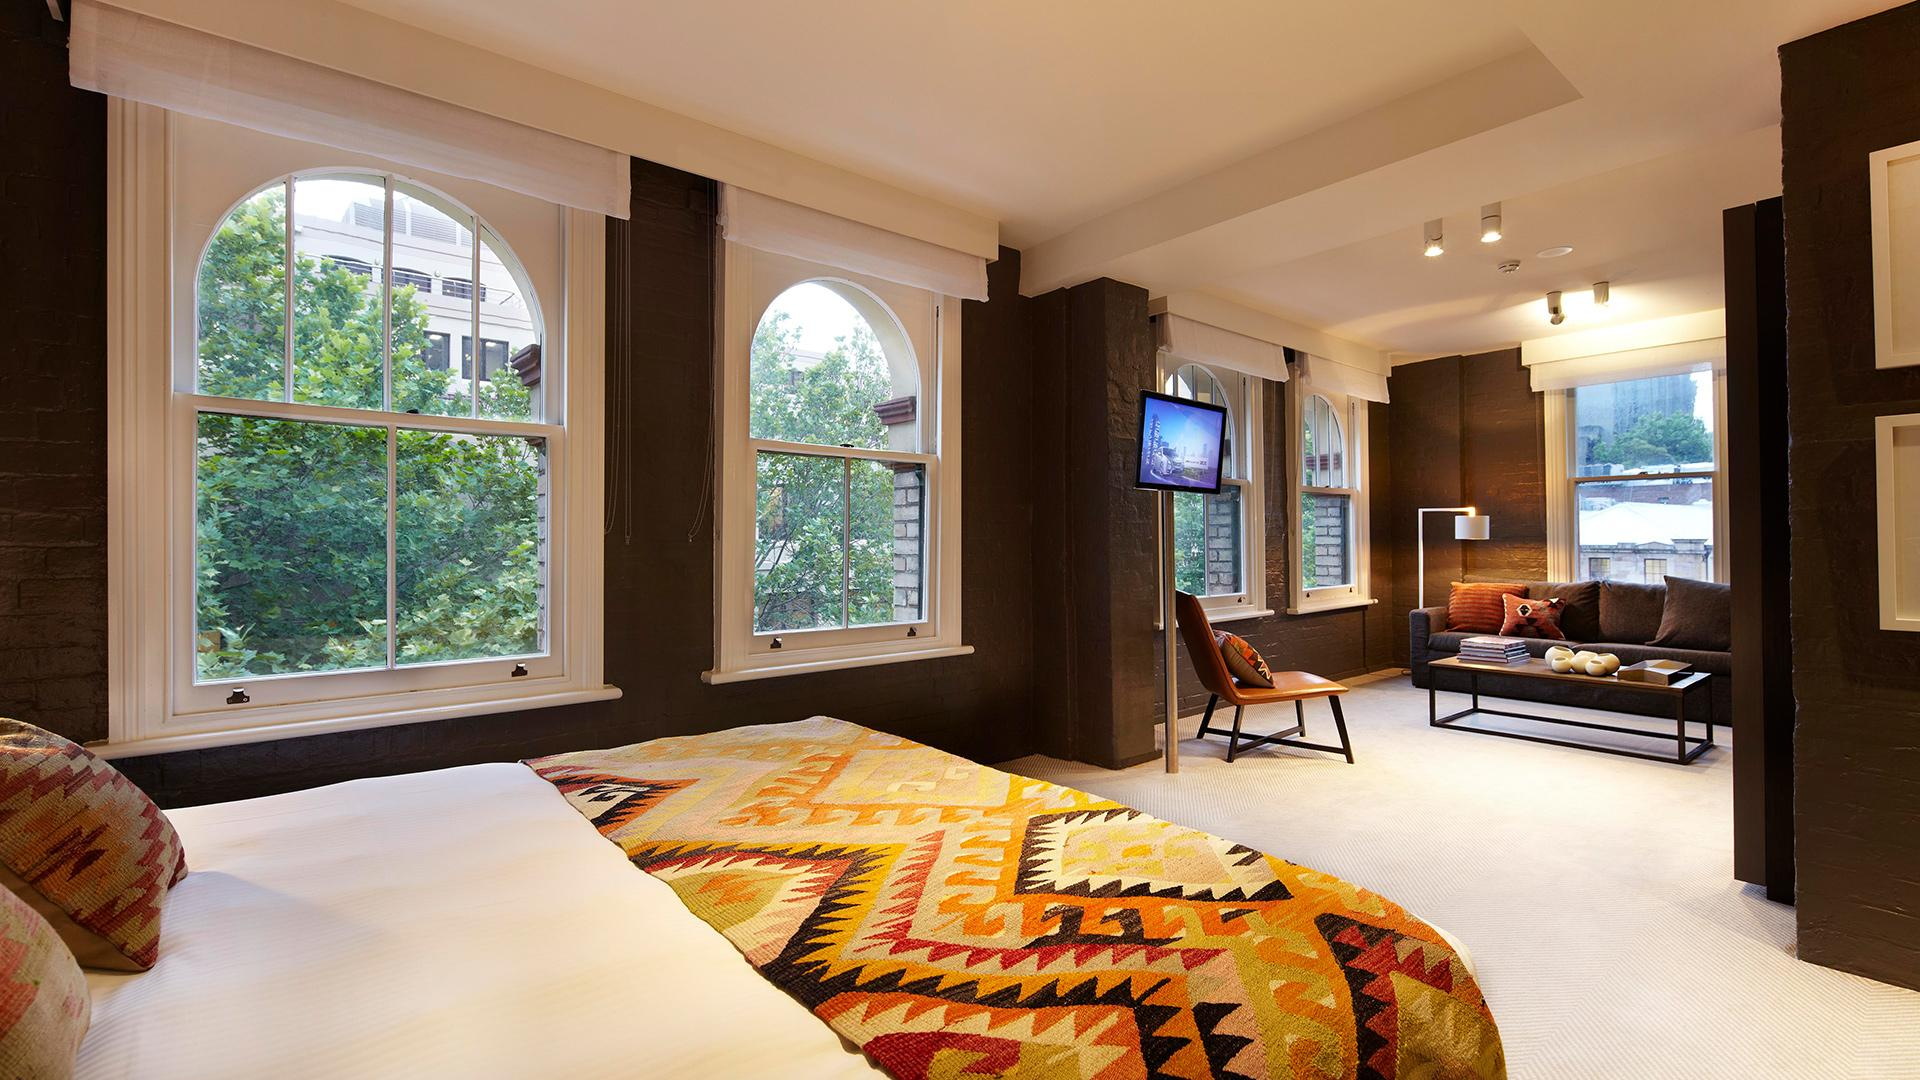 Studio Suite Gourmet Package image 1 at Harbour Rocks Hotel Sydney – MGallery by Sofitel by Council of the City of Sydney, New South Wales, Australia